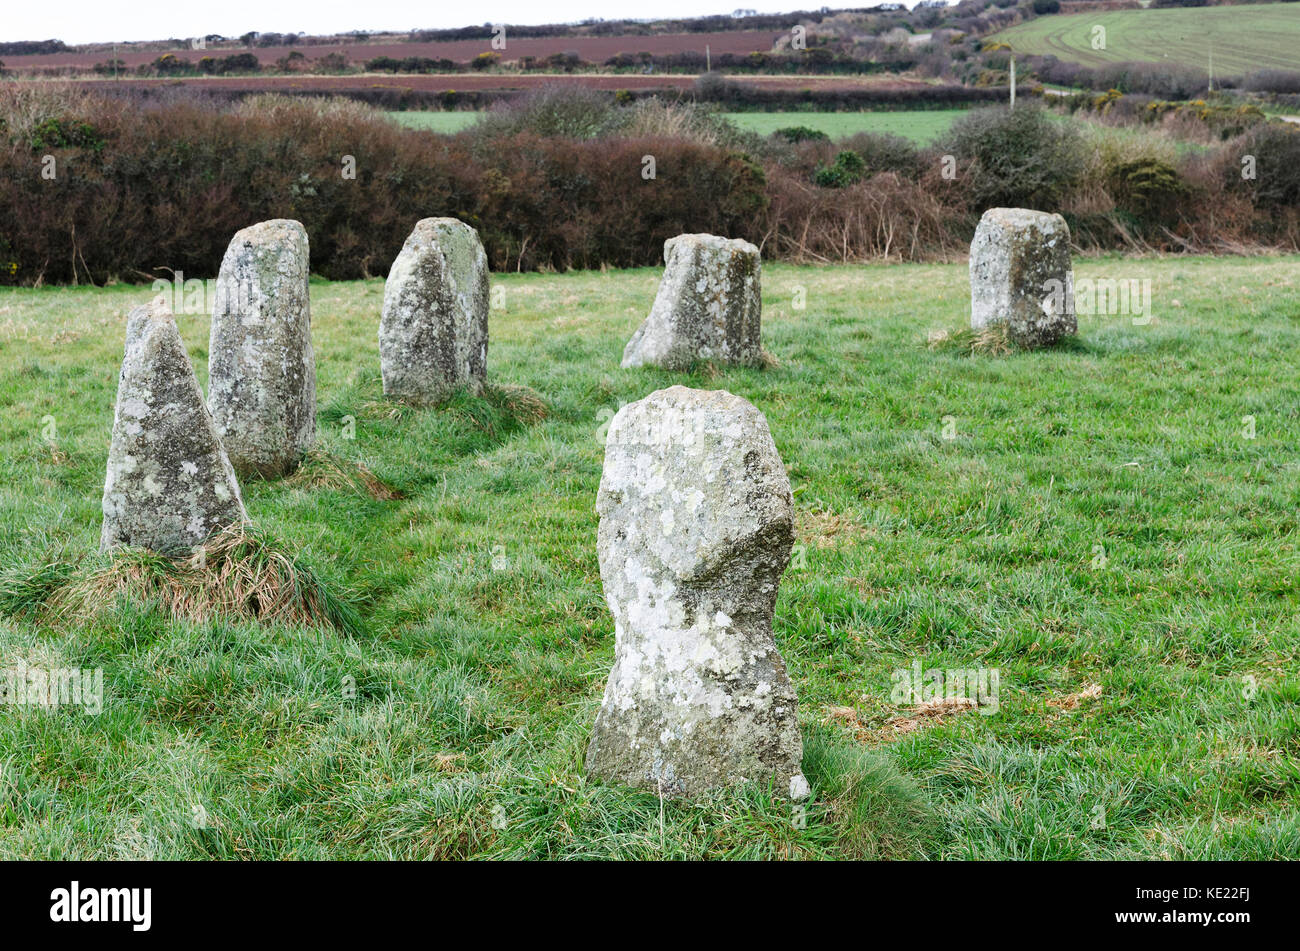 """"""" the merry maidens """" a late neolithic stone circle near st.buryan in cornwall, england, britain, uk. - Stock Image"""